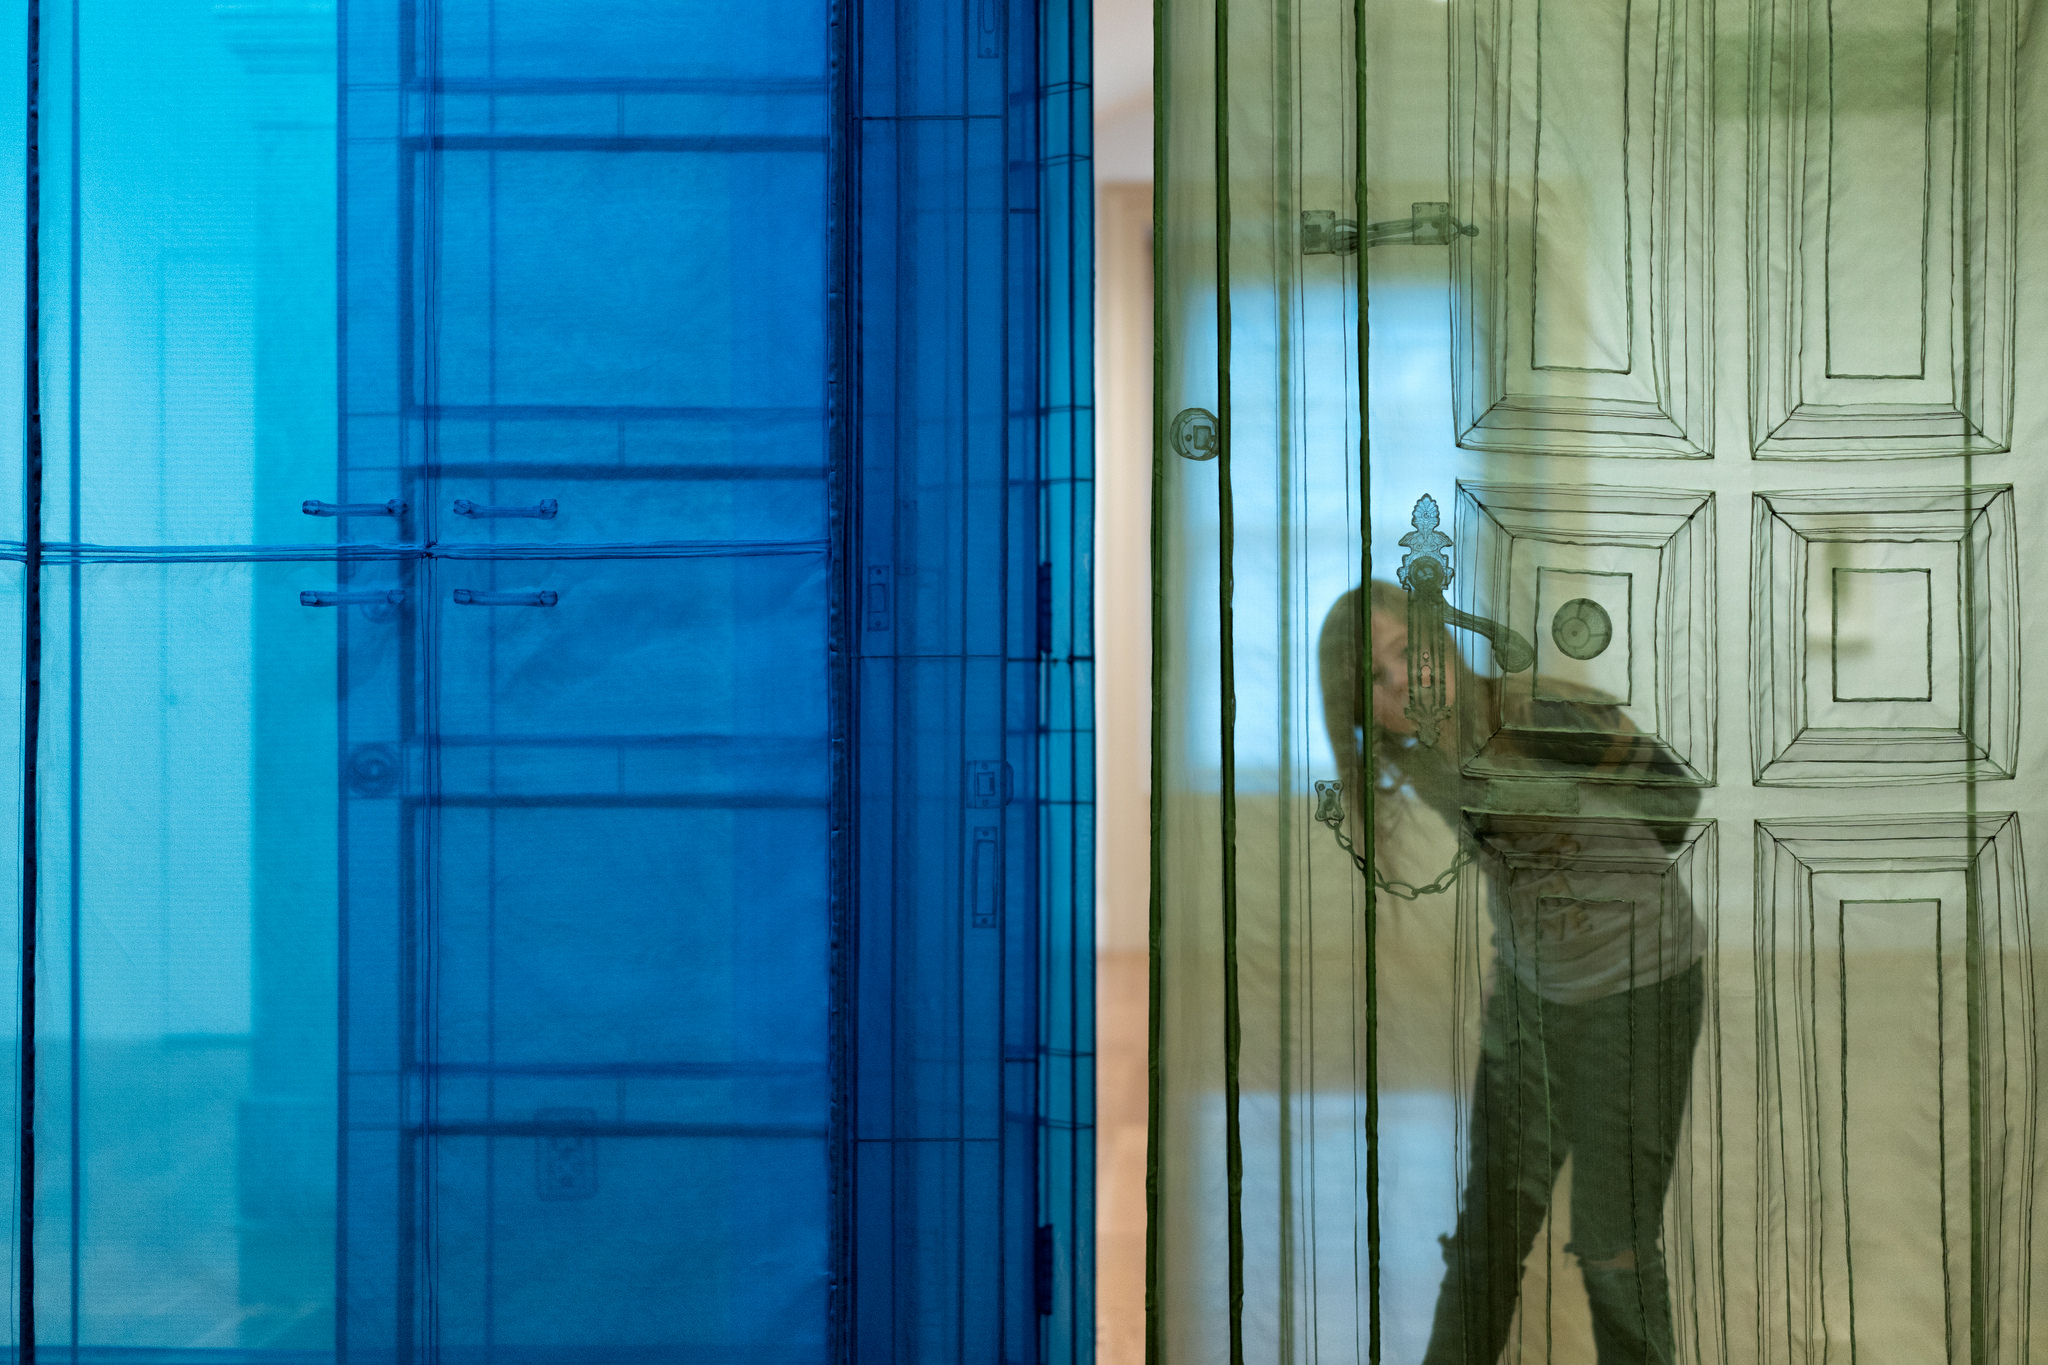 My Homes installation by Do Ho Suh: Almost Home at Smithsonian American Art Museum